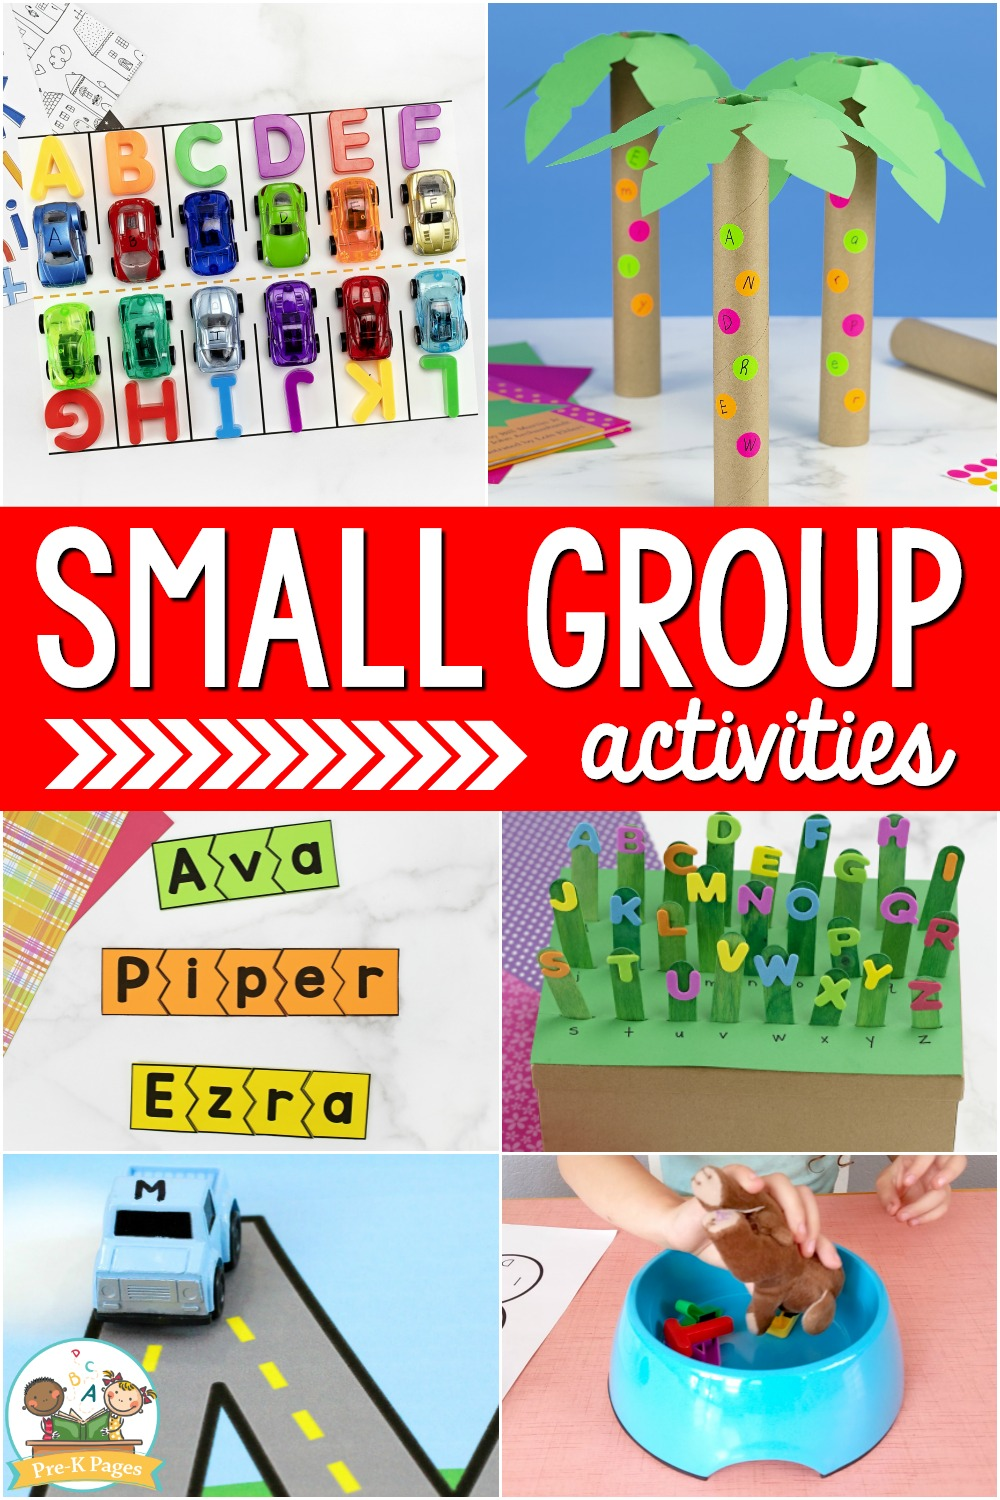 Small Group Activities for Pre-K